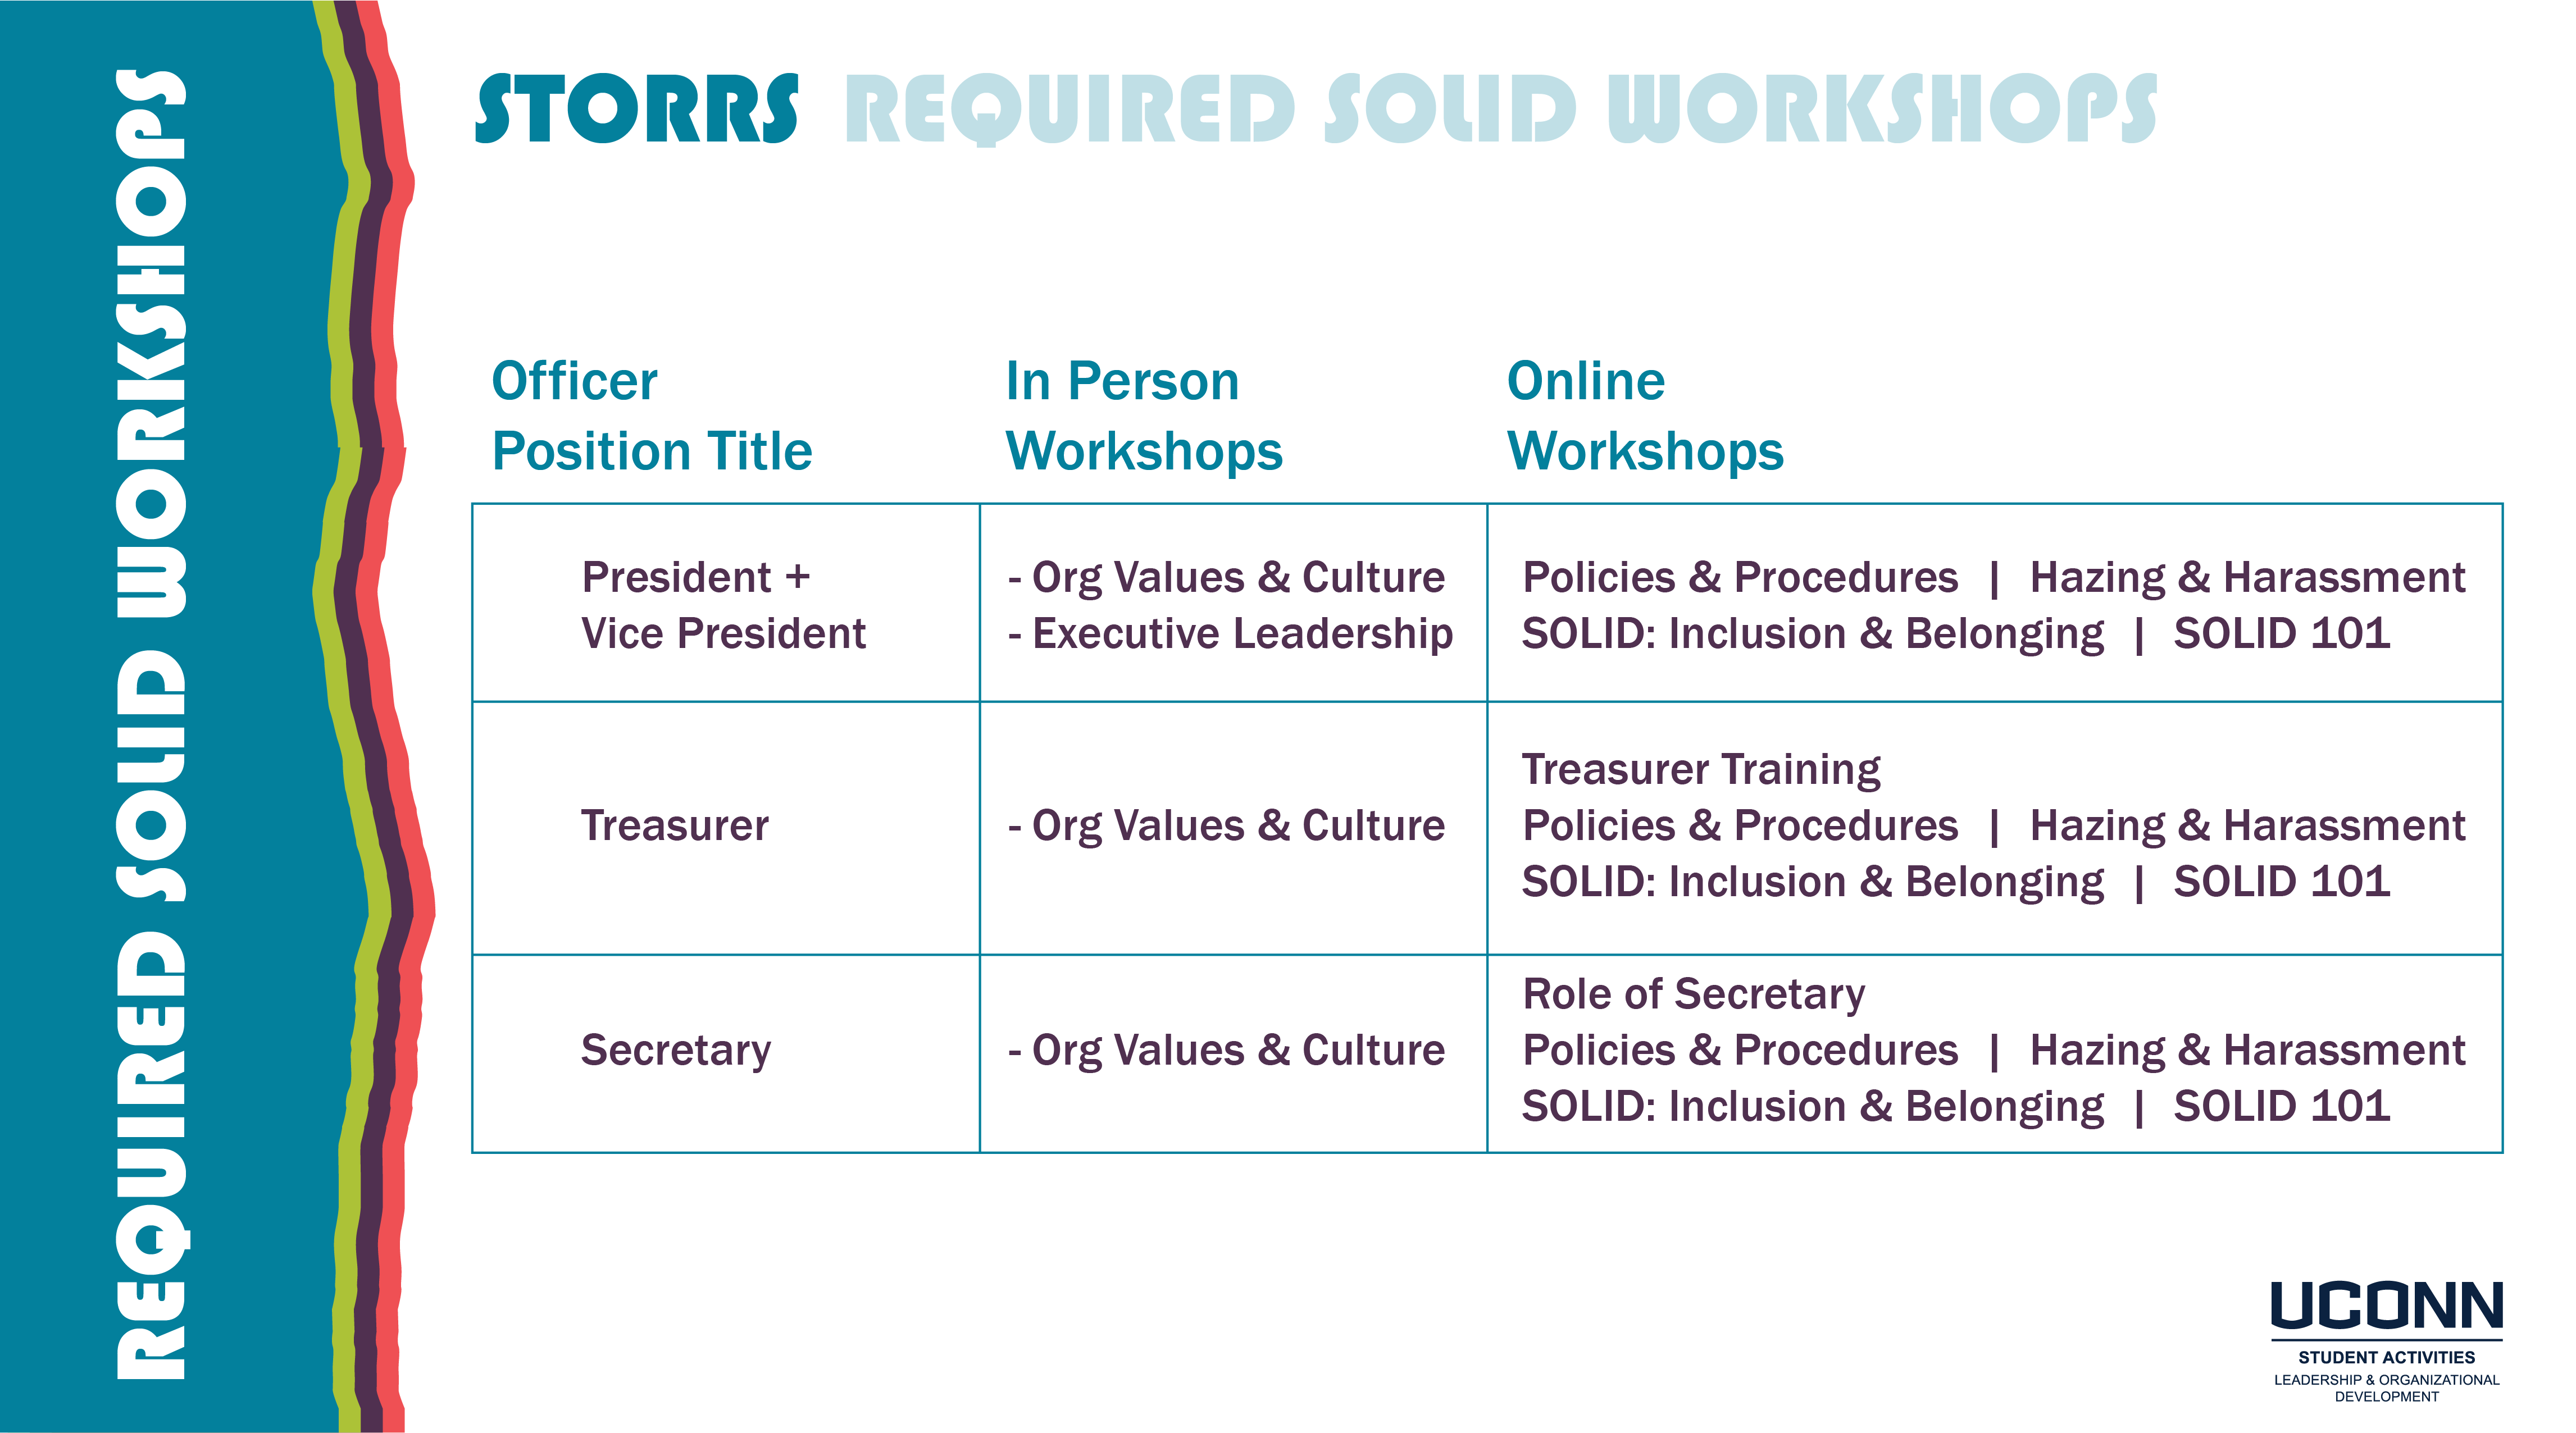 Storrs SOLID Workshop Requirements Image (read below for text)